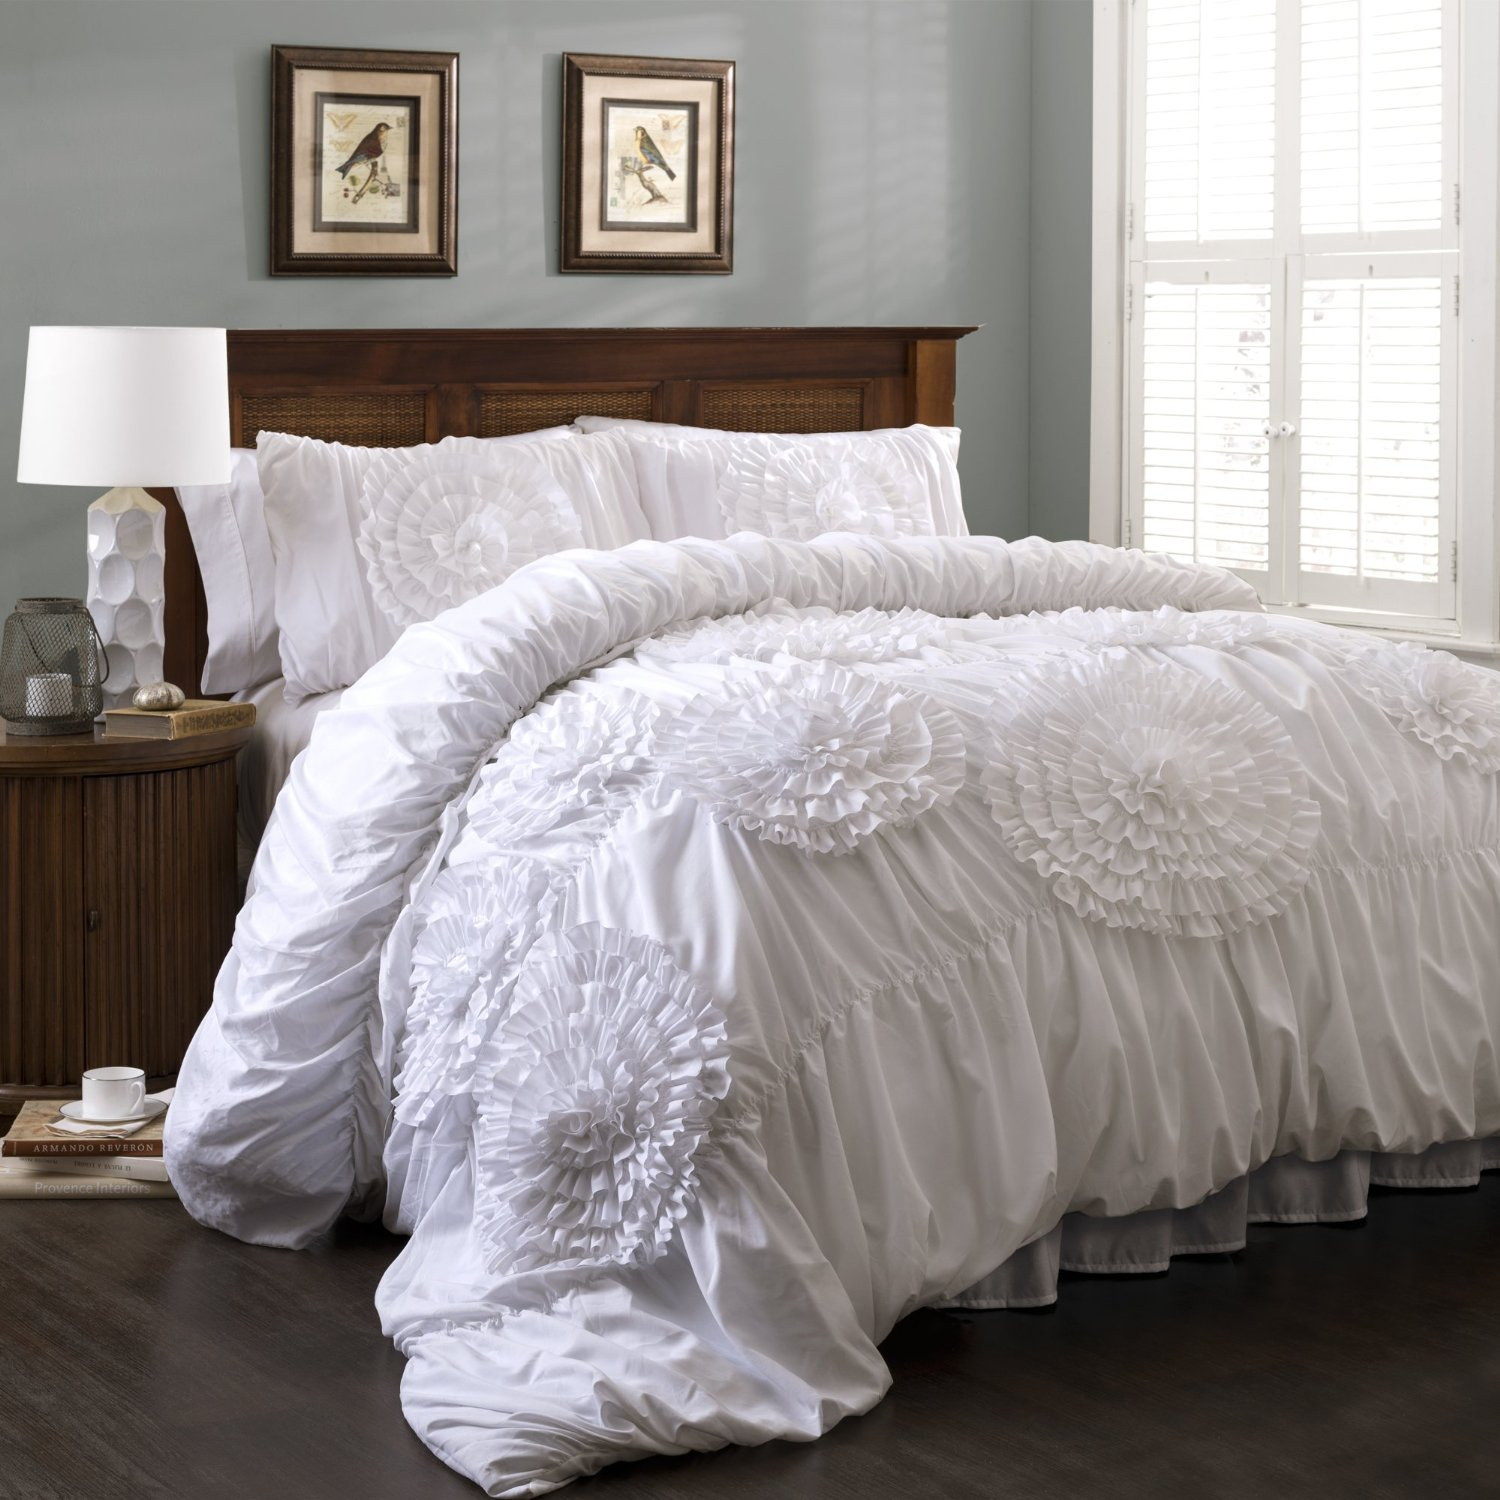 wooden headboard and ruffle comforter